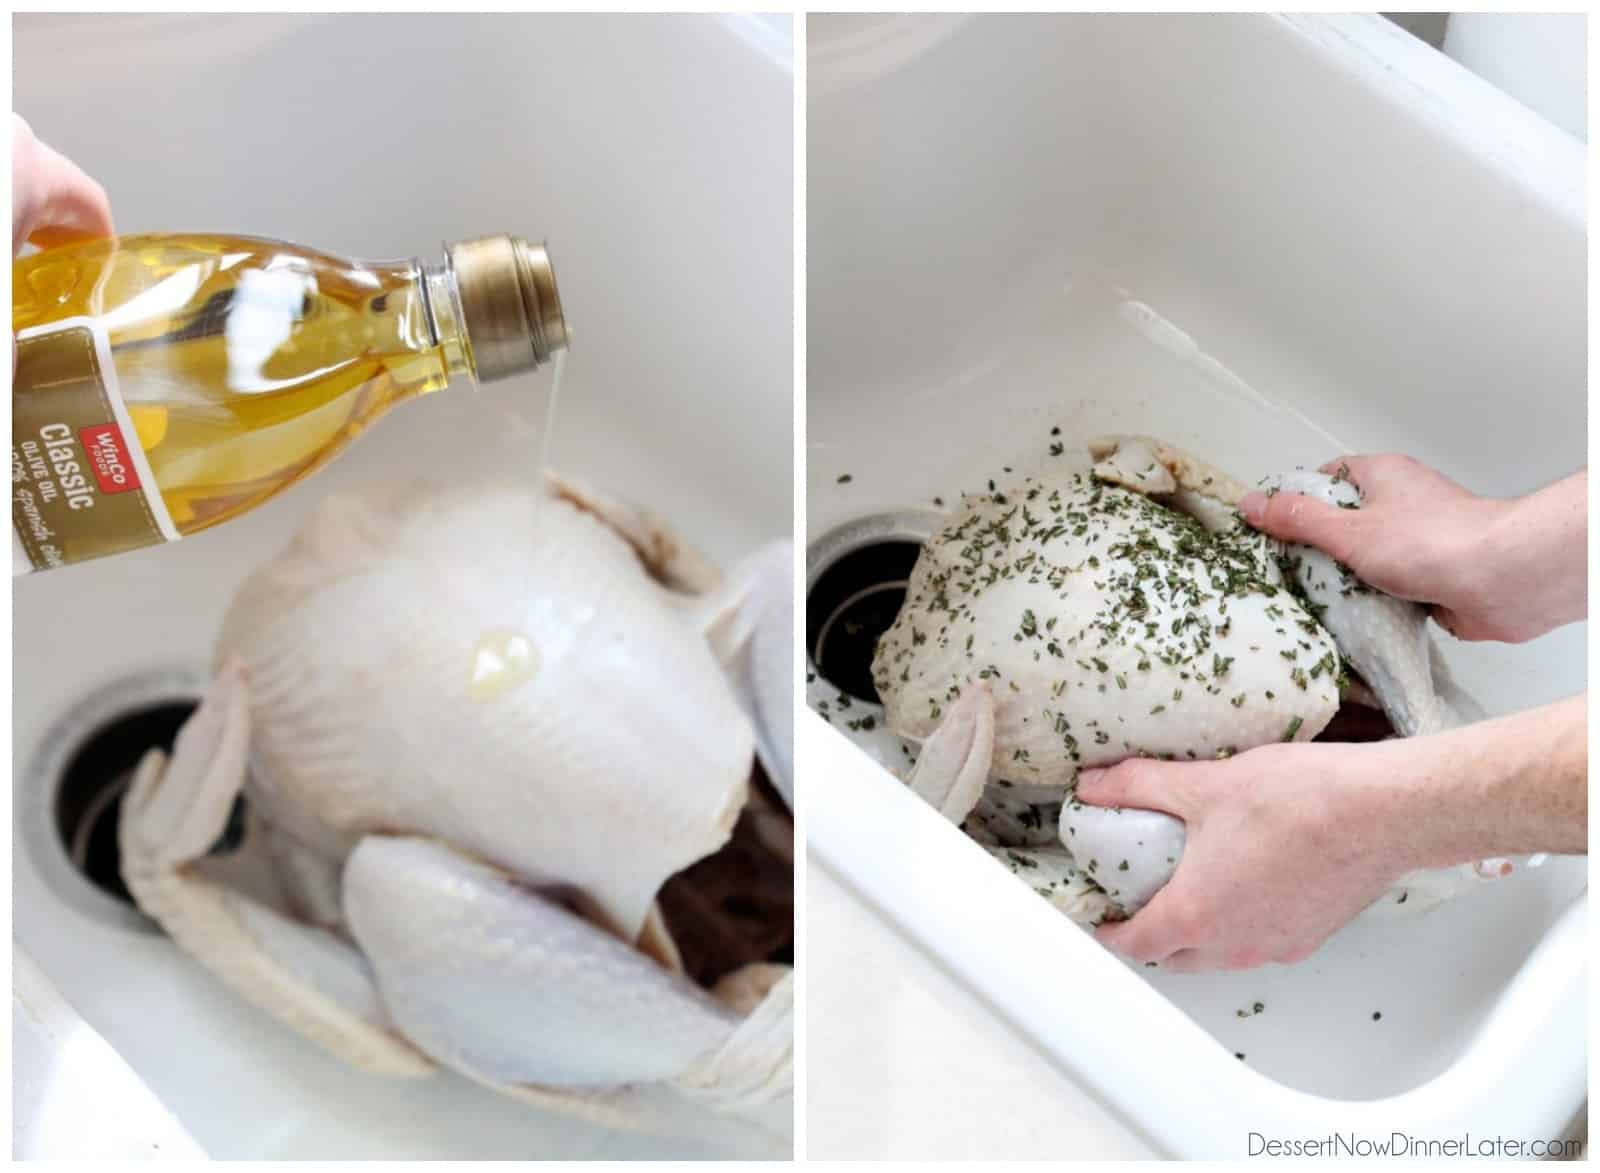 Our favorite Apple and Herb Turkey Brine with step-by-step photos on how to brine and cook a turkey to juicy perfection! From DessertNowDinnerLater.com